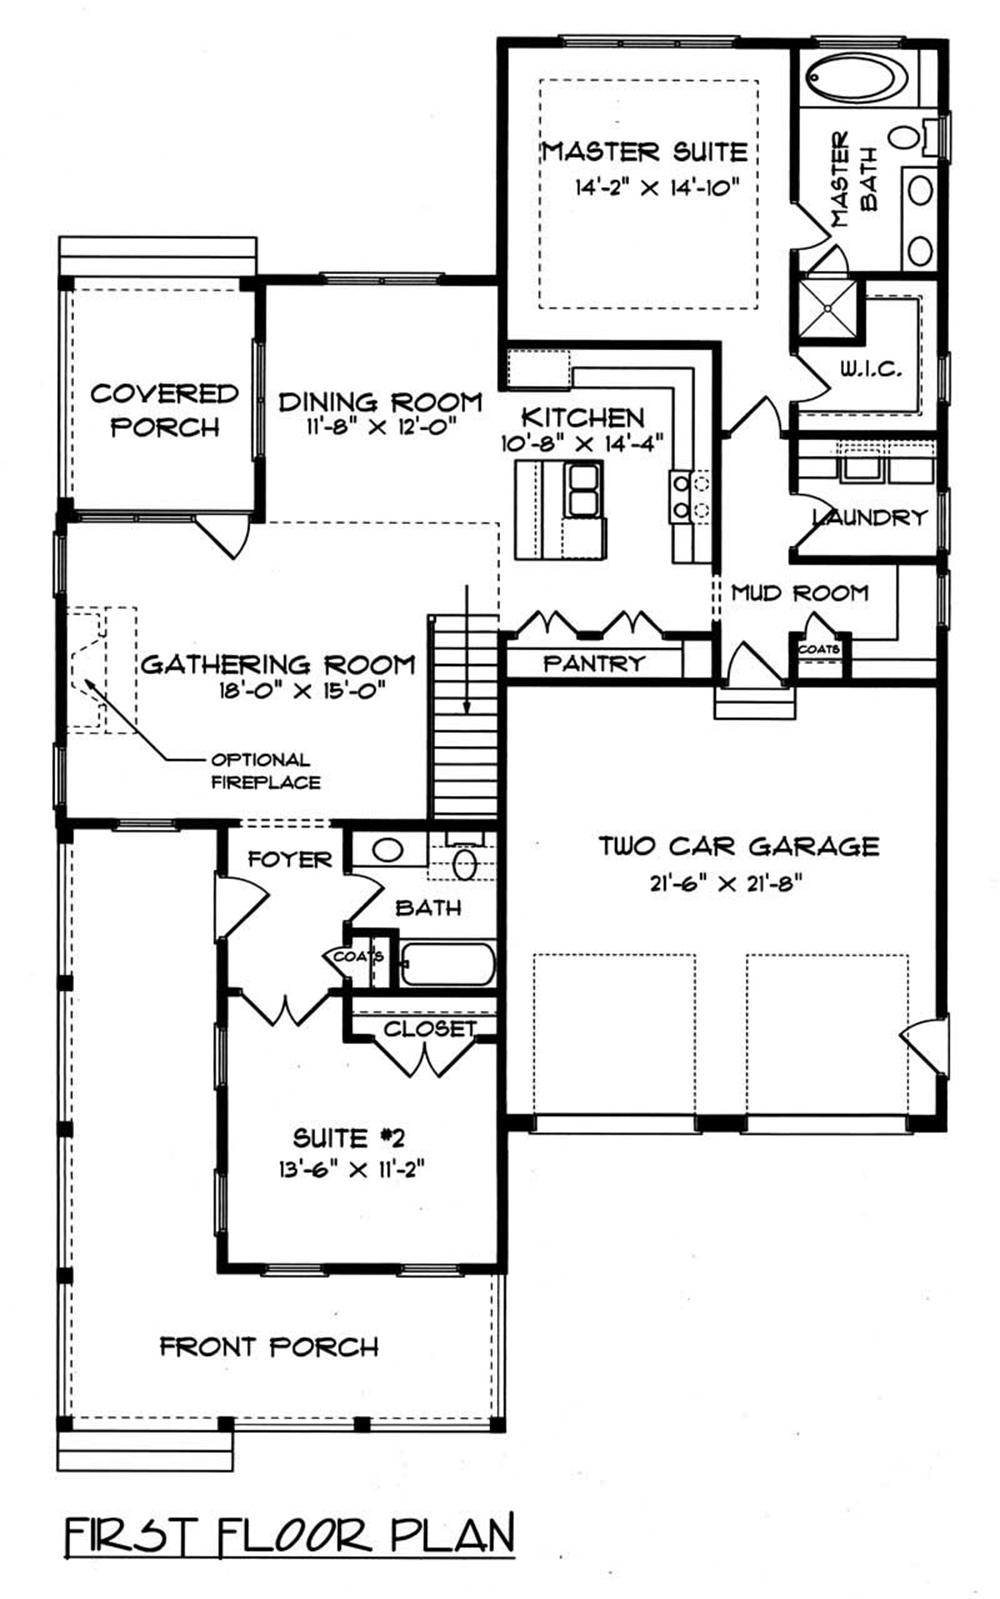 House Plan EDG-1958-A3 Main Floor Plan